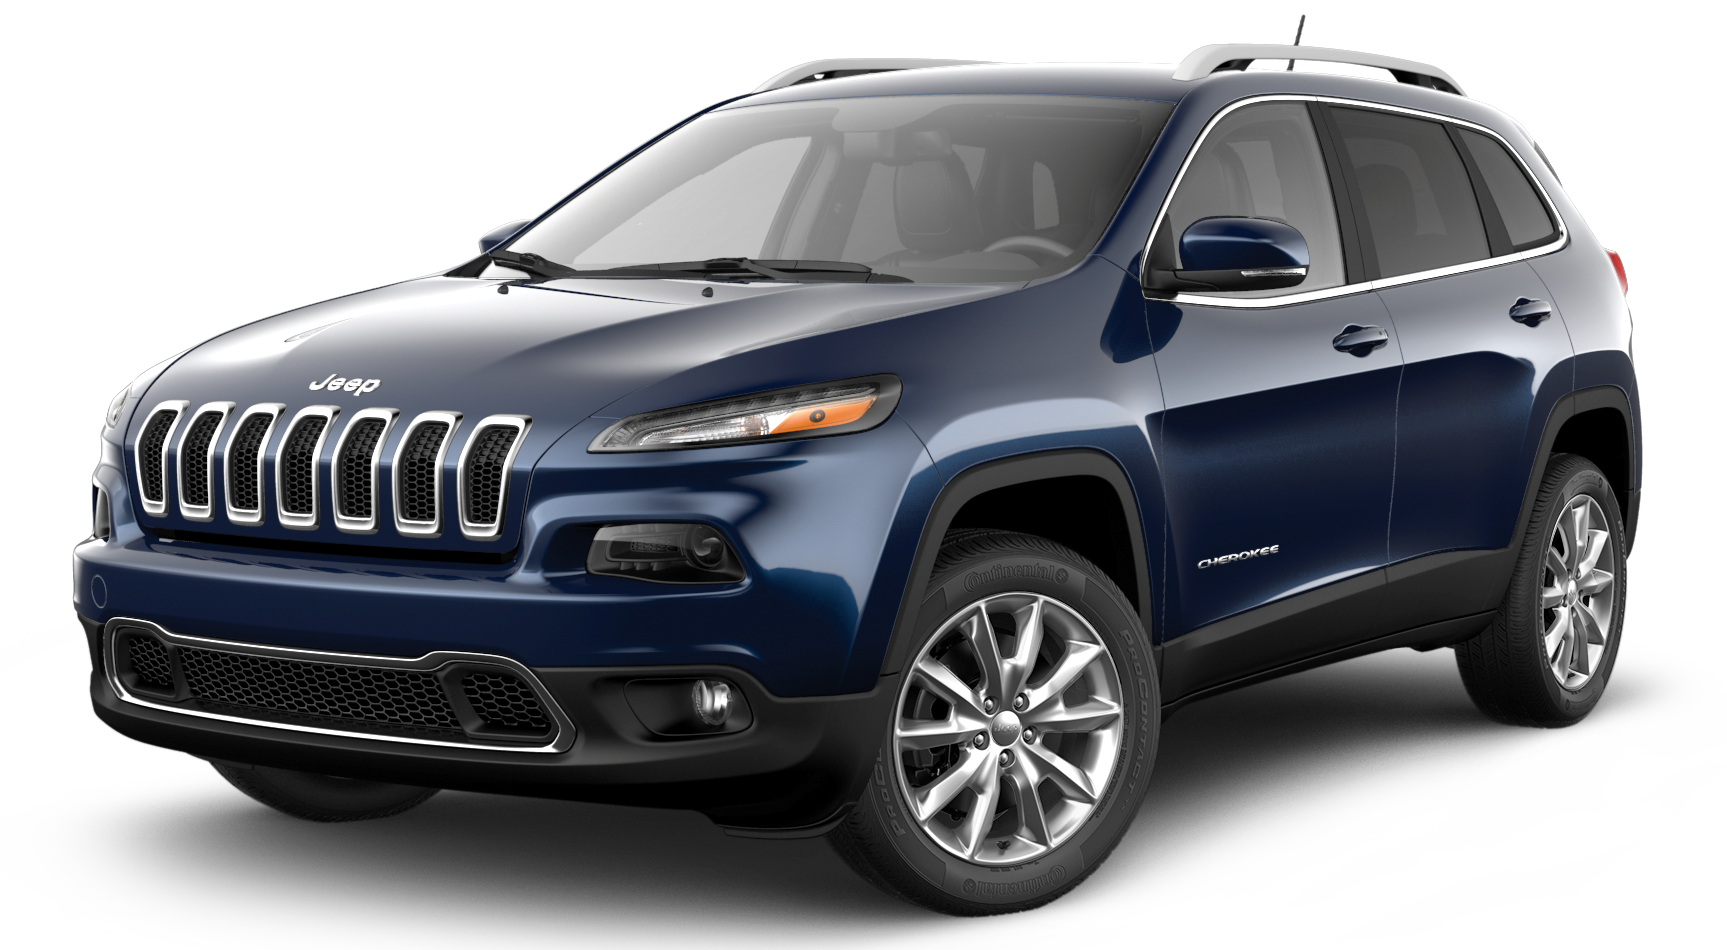 2016 jeep cherokee png. Used colorado springs co